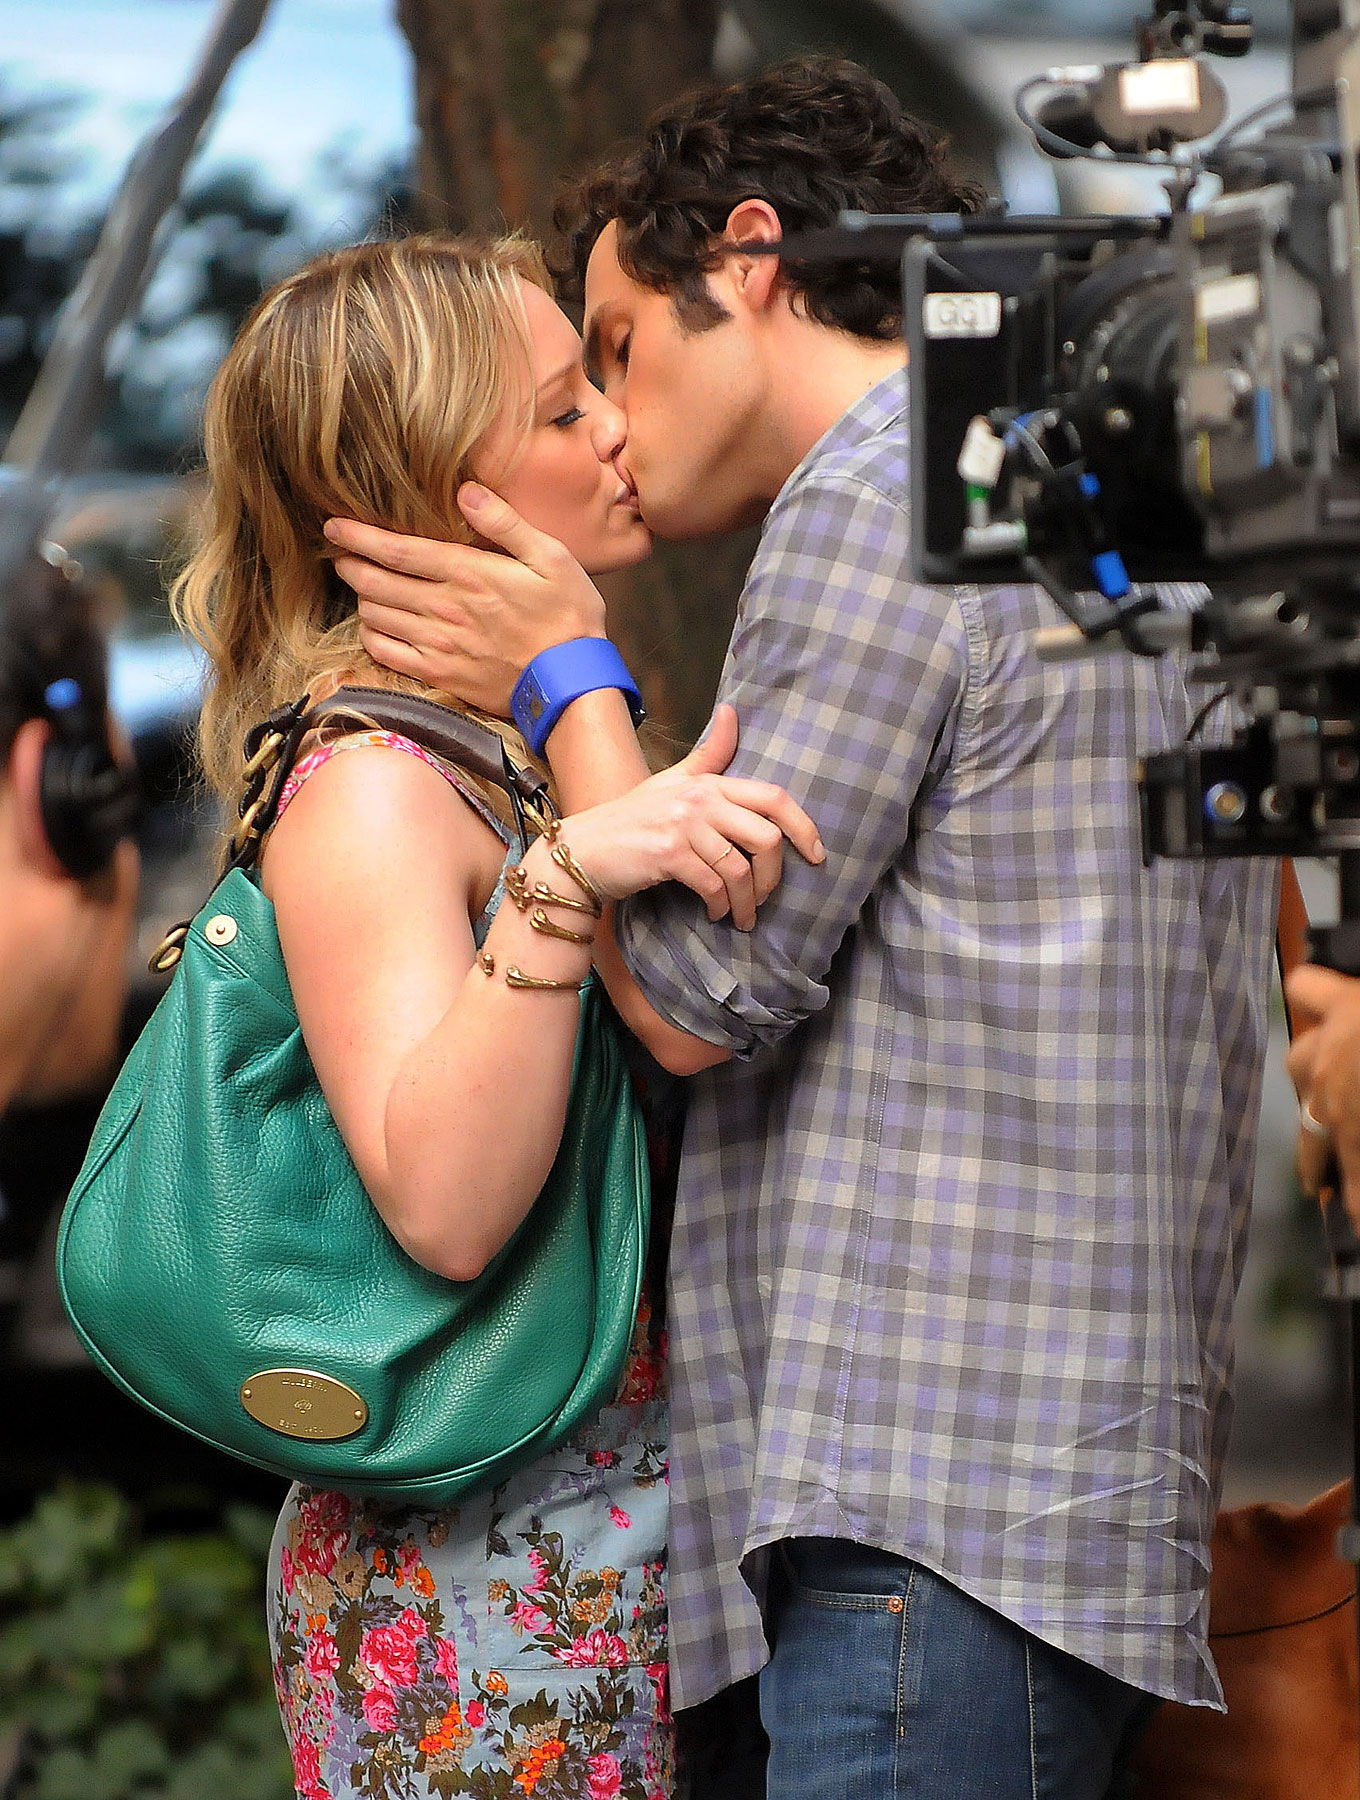 PHOTO GALLERY: Hilary Duff & Penn Badgley Smooch on Set